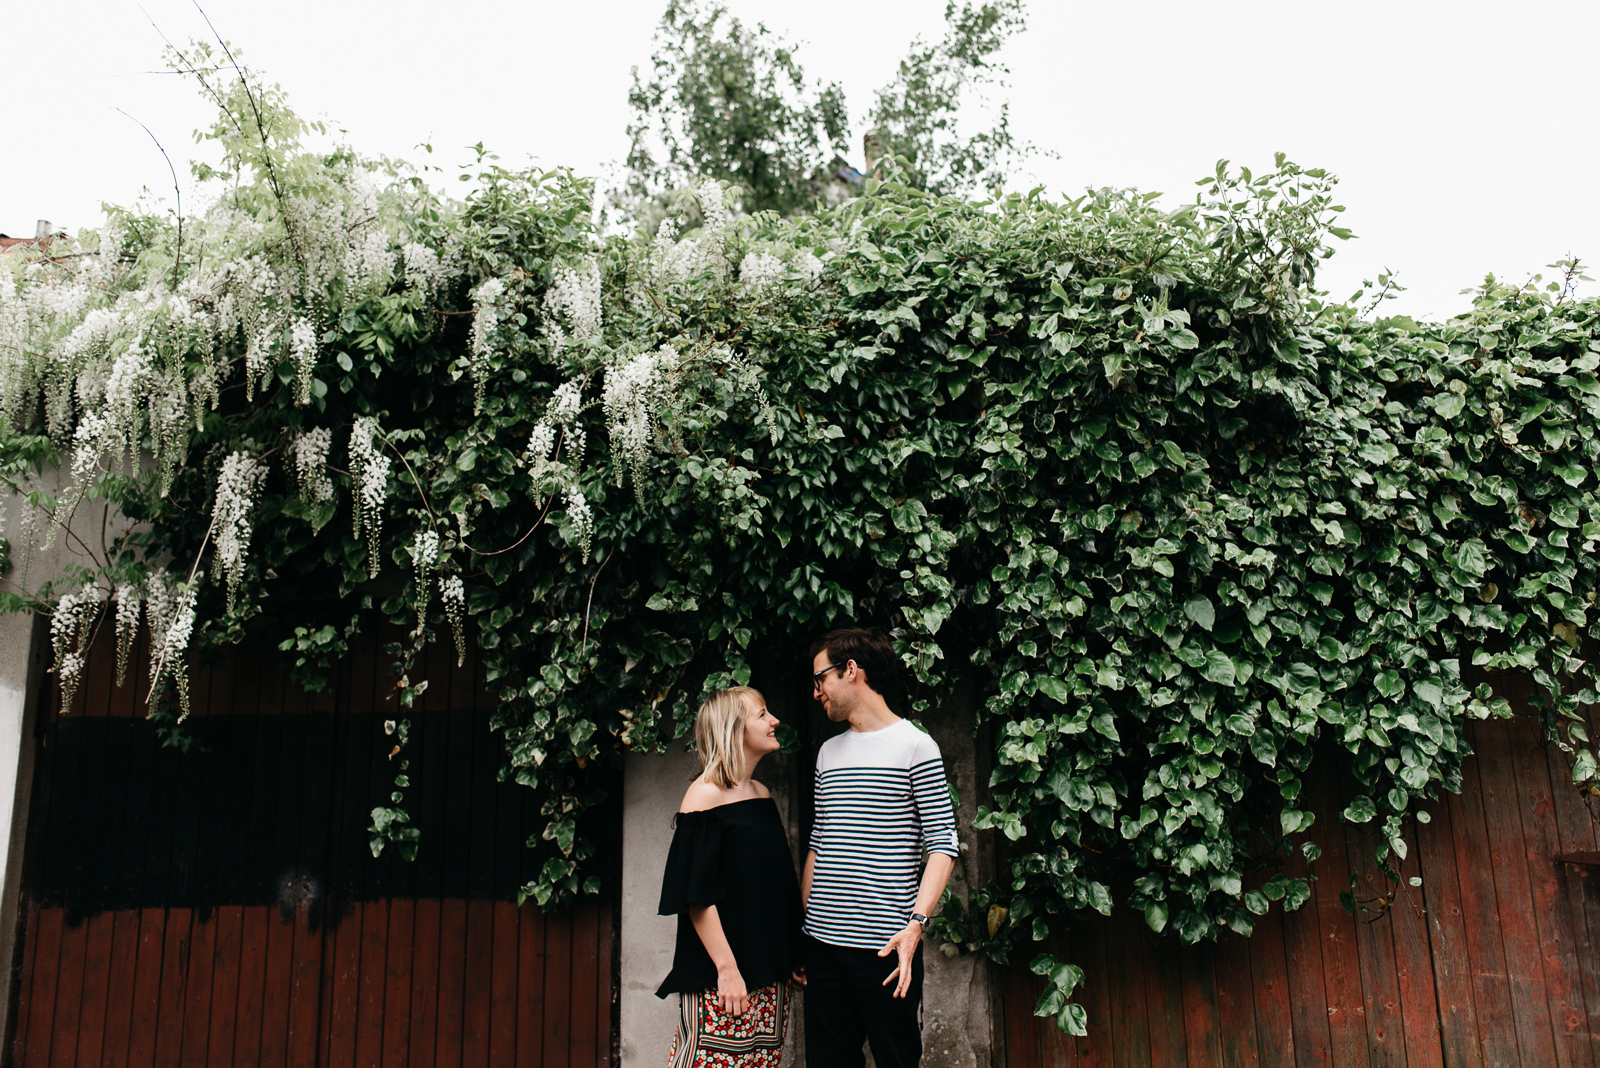 Cardiff Engagement Photographer - Urban pre wedding shoot in Roath // Elaine Williams Photography